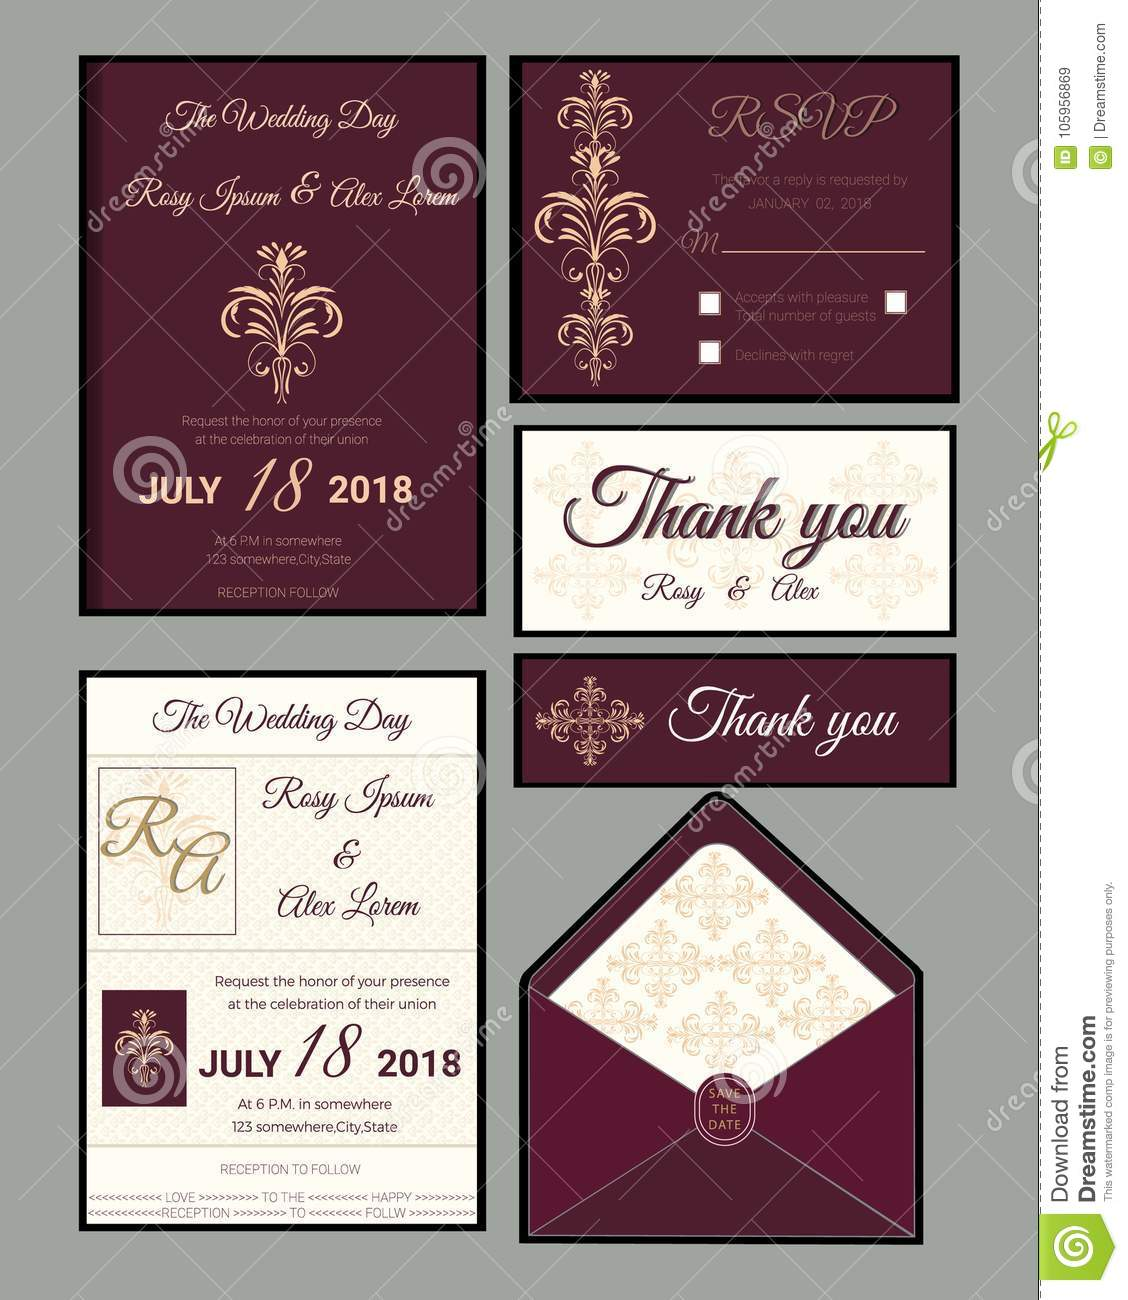 Wedding Invitation Save The Date Rsvp Card Thank You Cardgift